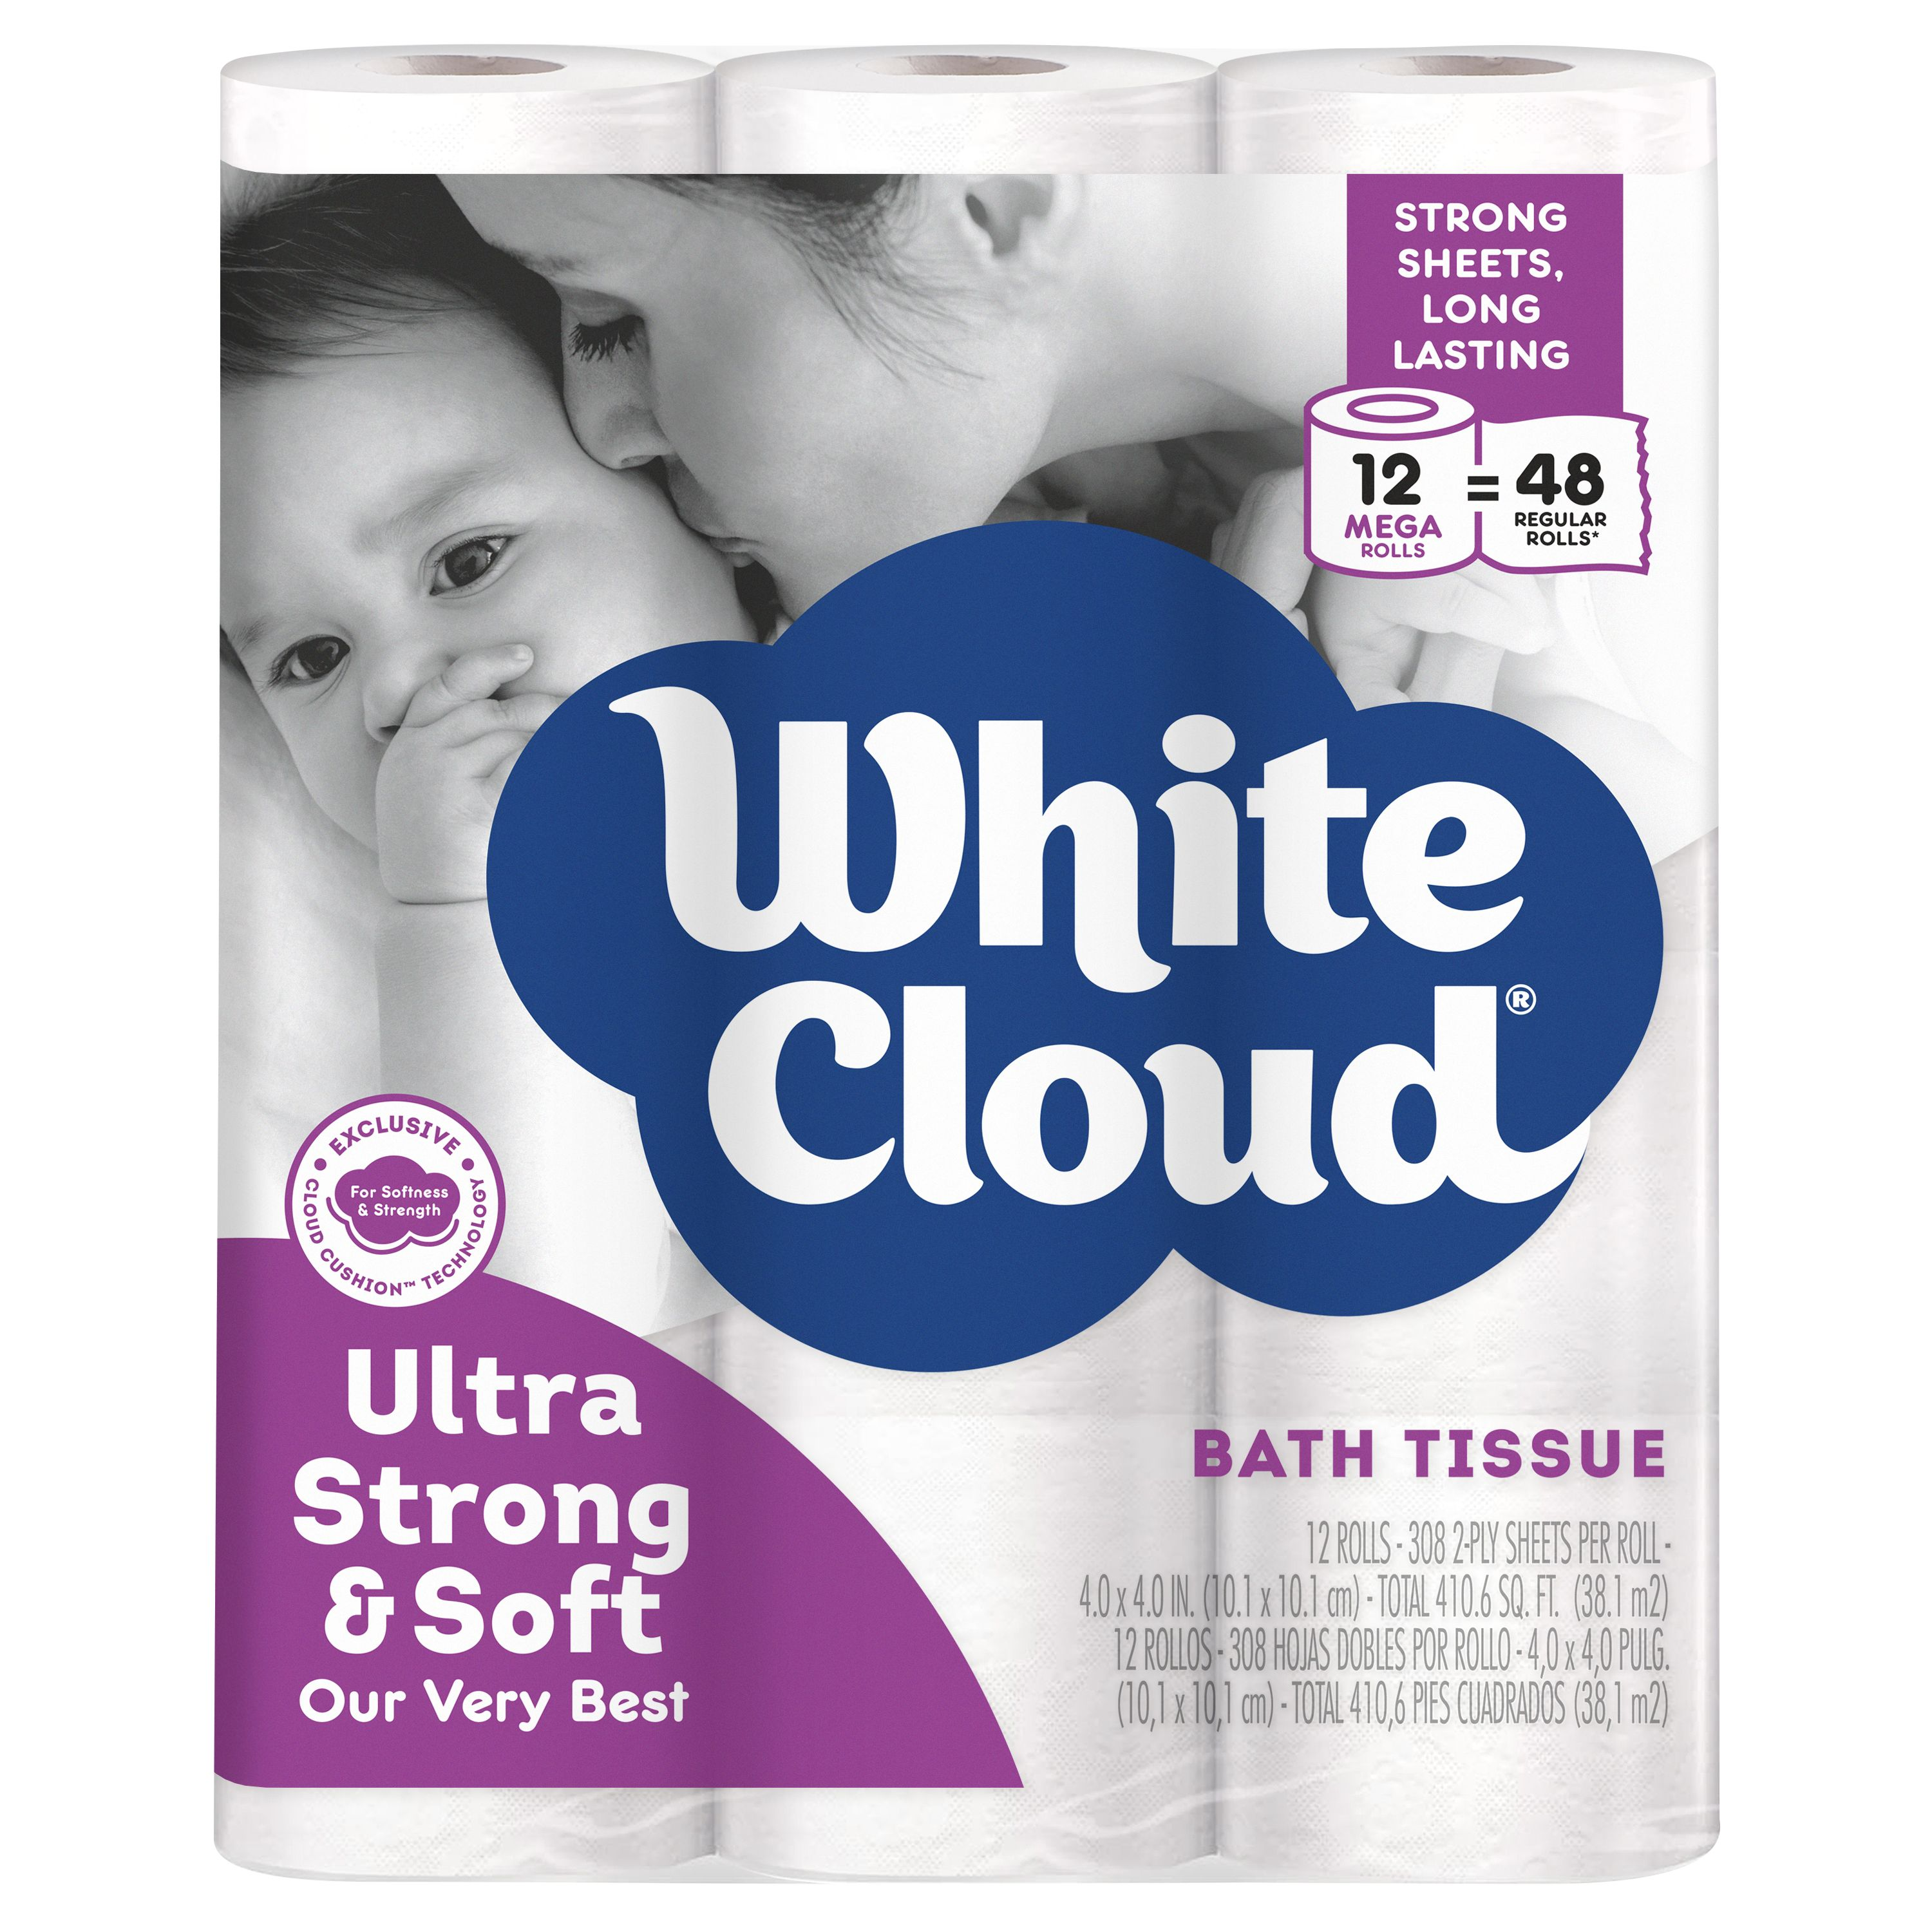 White Cloud Ultra Strong & Soft Toilet Paper, 12 Mega Rolls